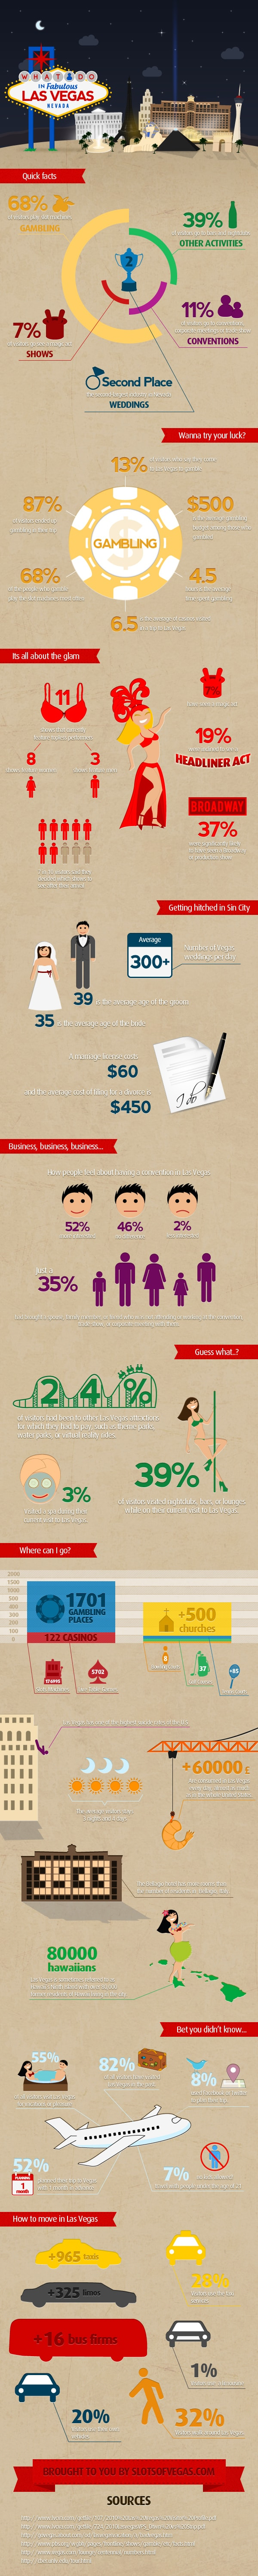 Things people do in las vegas infographic